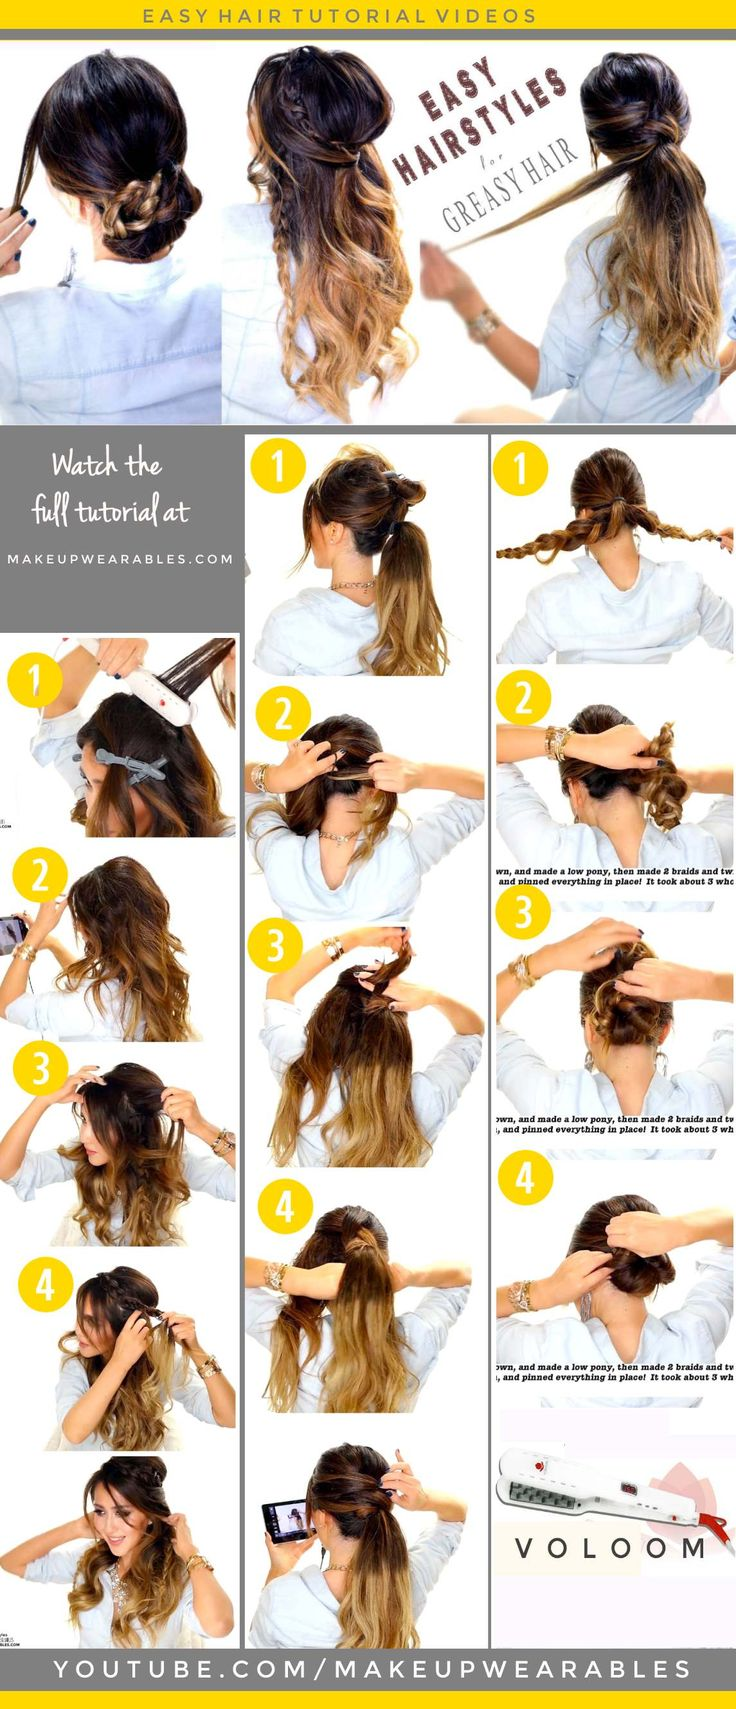 4 Easy #Hairstyles for Greasy #Hair | Half-Up Braid, Bun, Ponytail